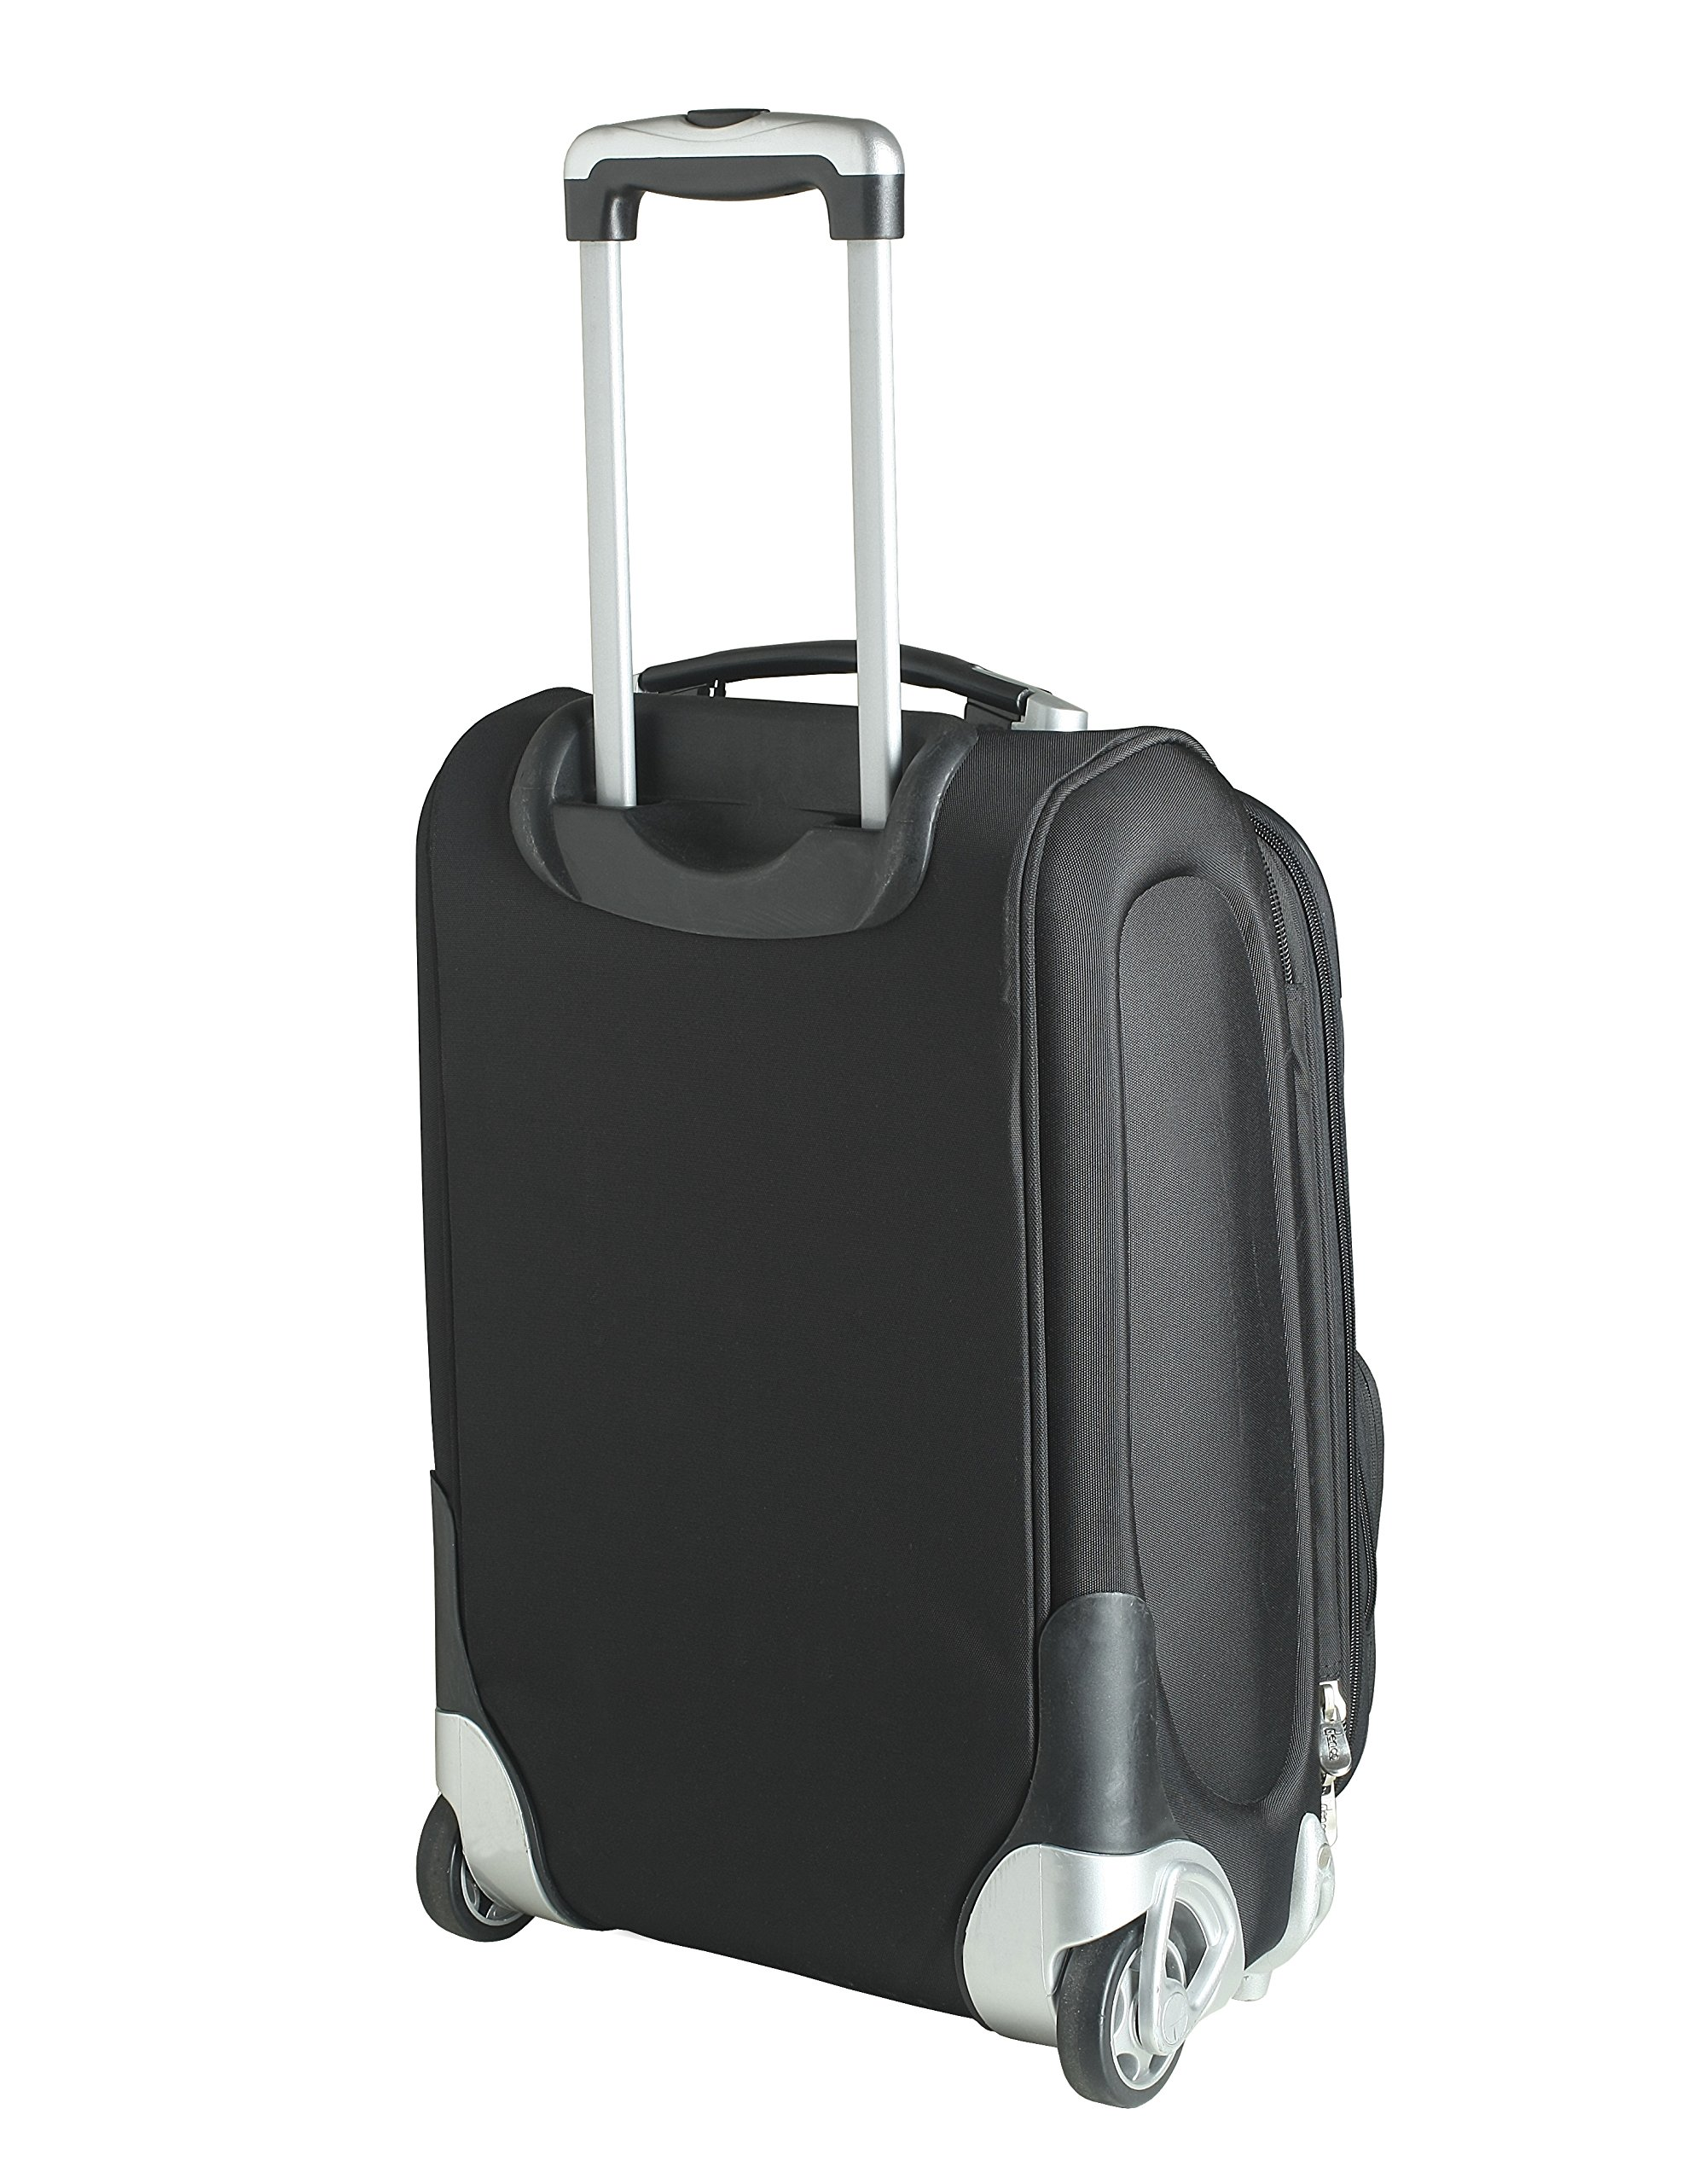 NFL Dallas Cowboys 21-inch Carry-On Luggage by Denco (Image #3)